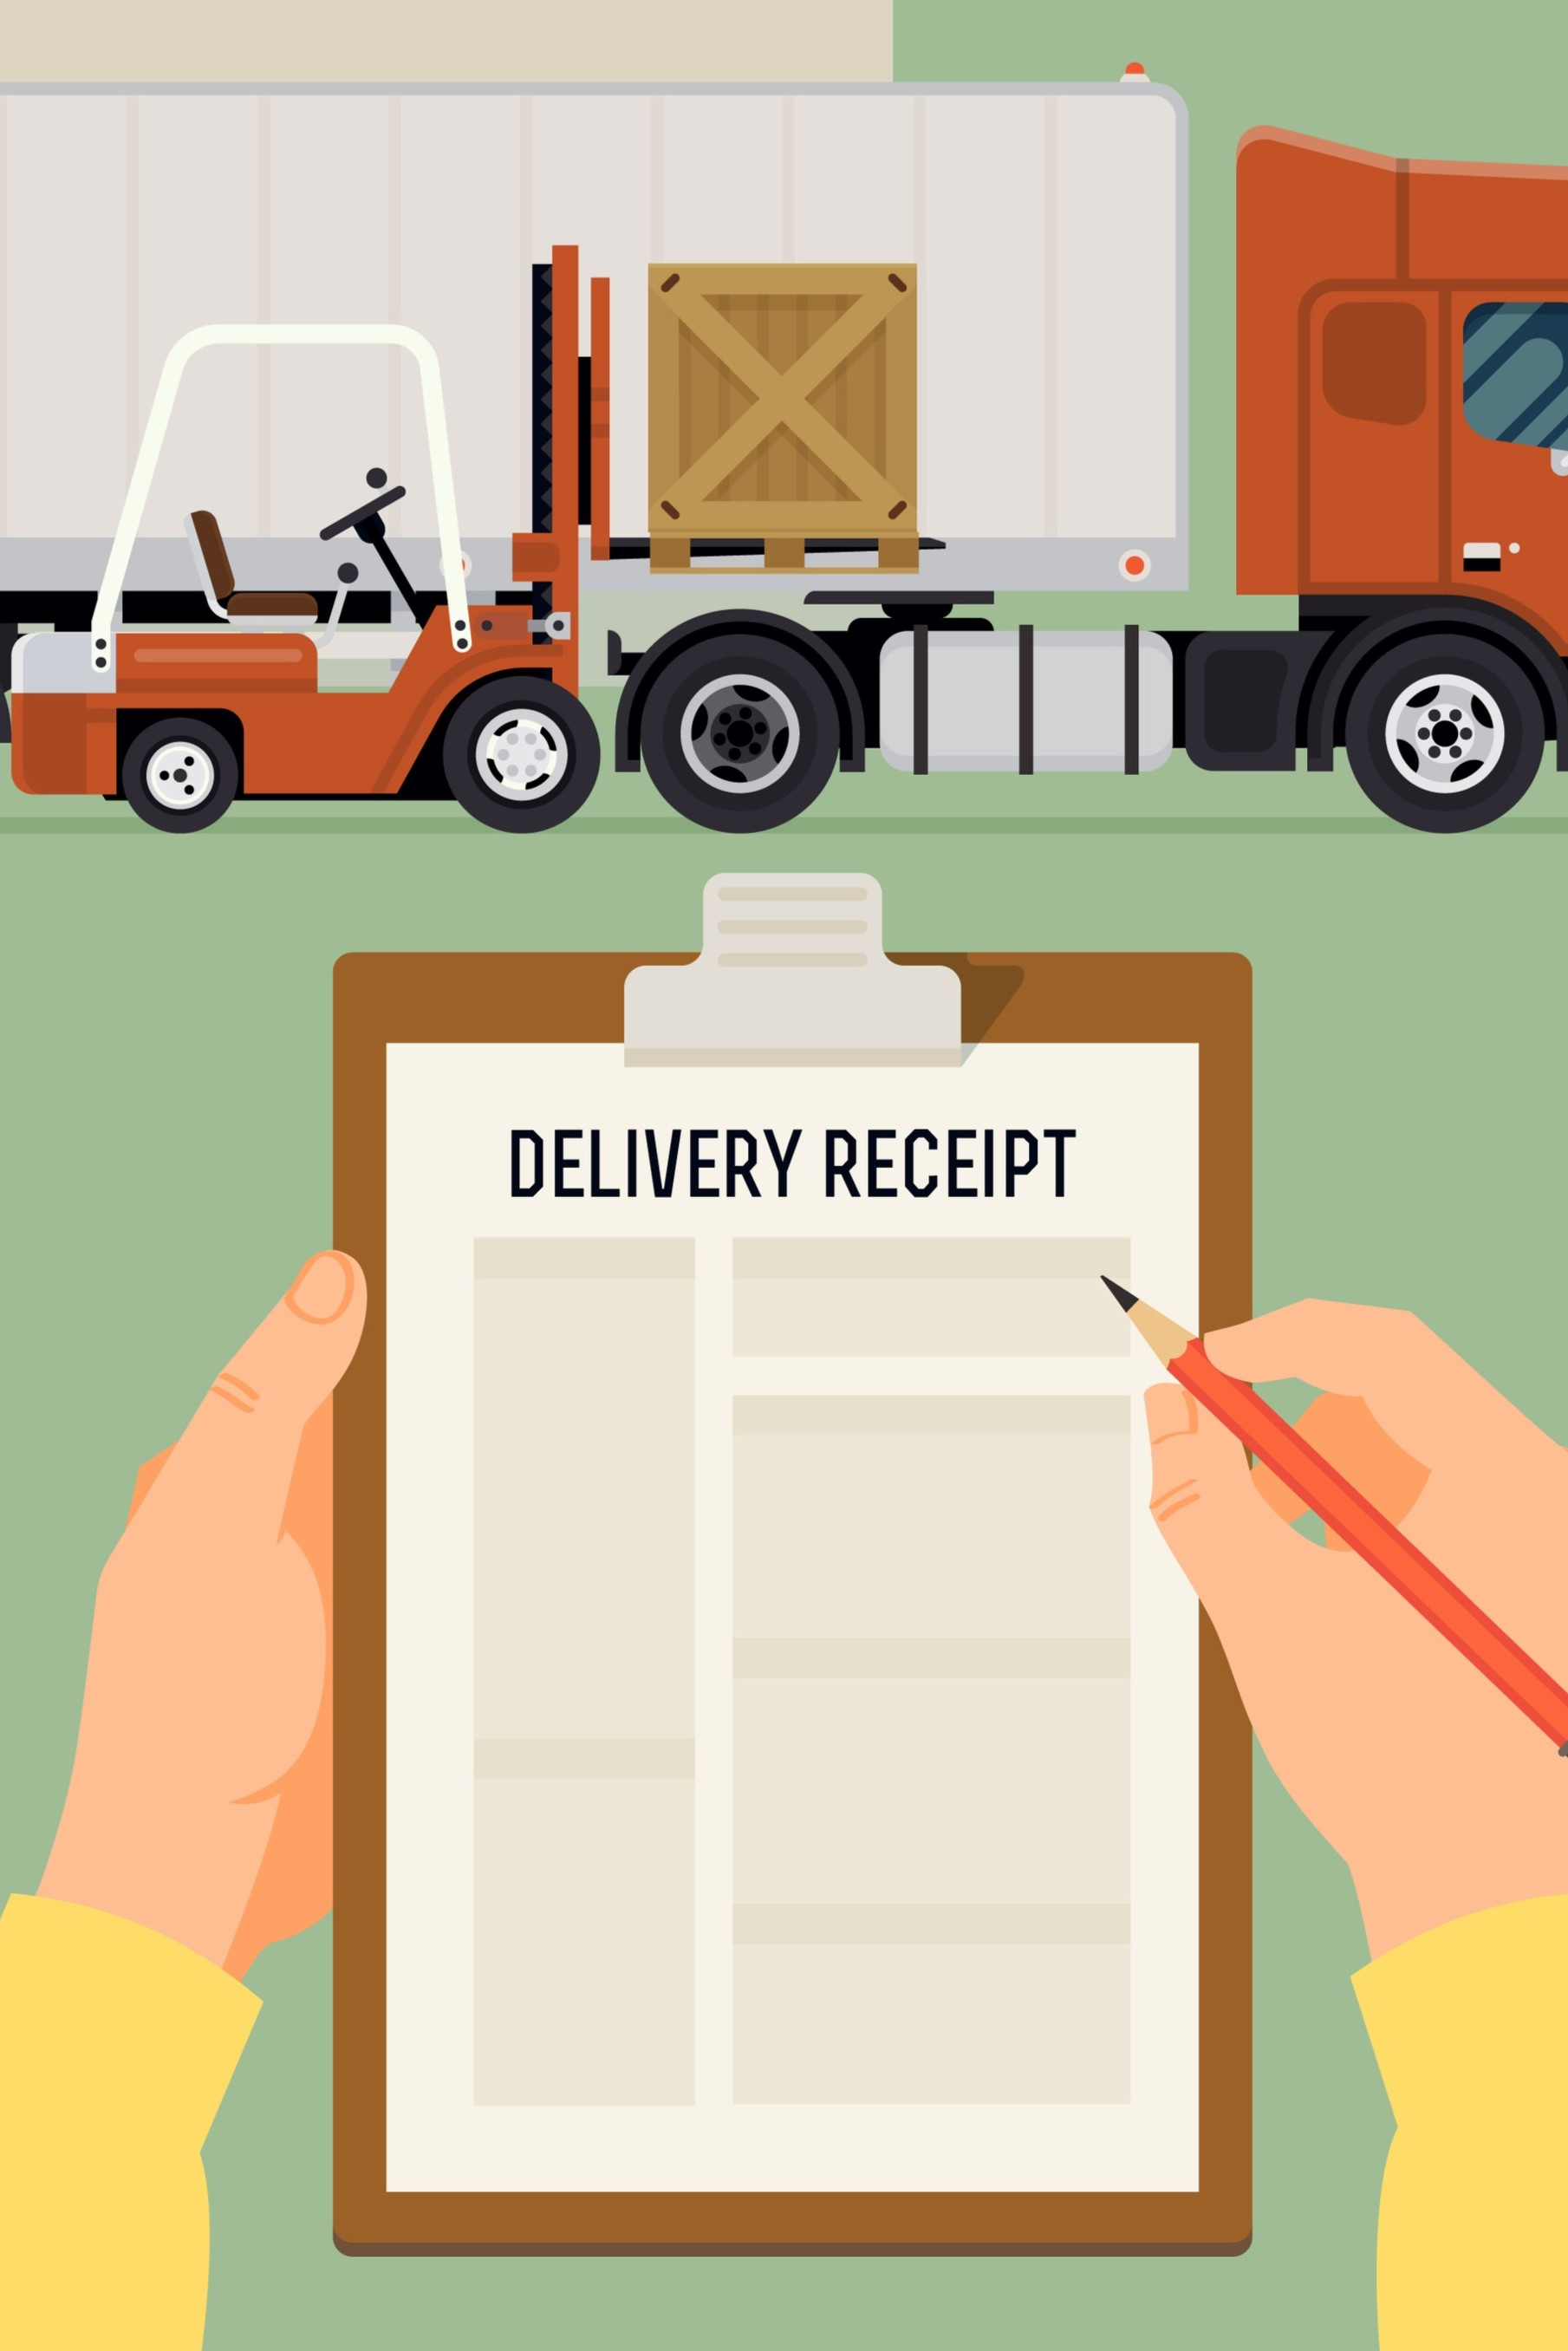 lorry receipts or a lorry receipt copy is the proof of delivery of a consignment or even the proof of possession of the entire goods